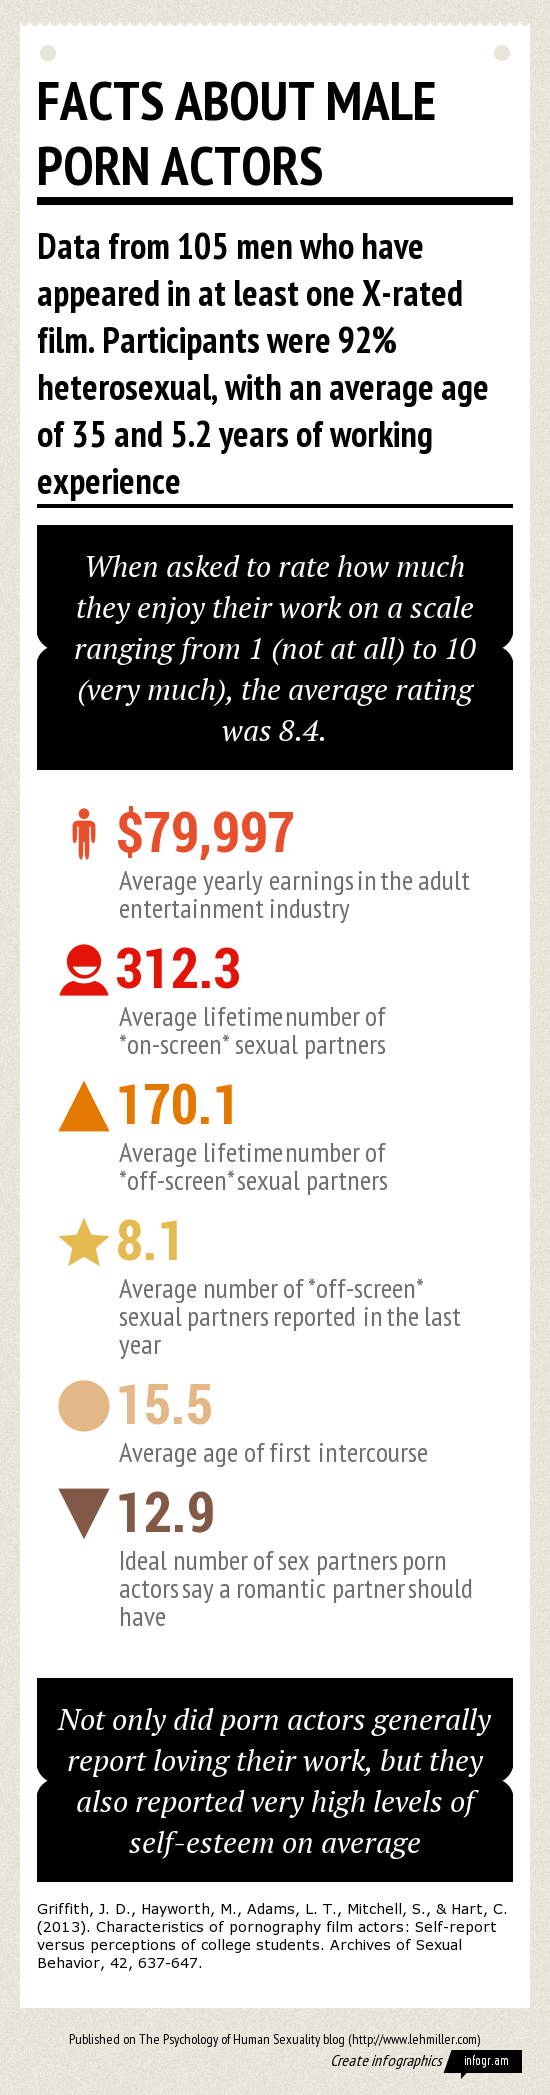 Infographic with statistics on men who have appeared in pornographic films and movies